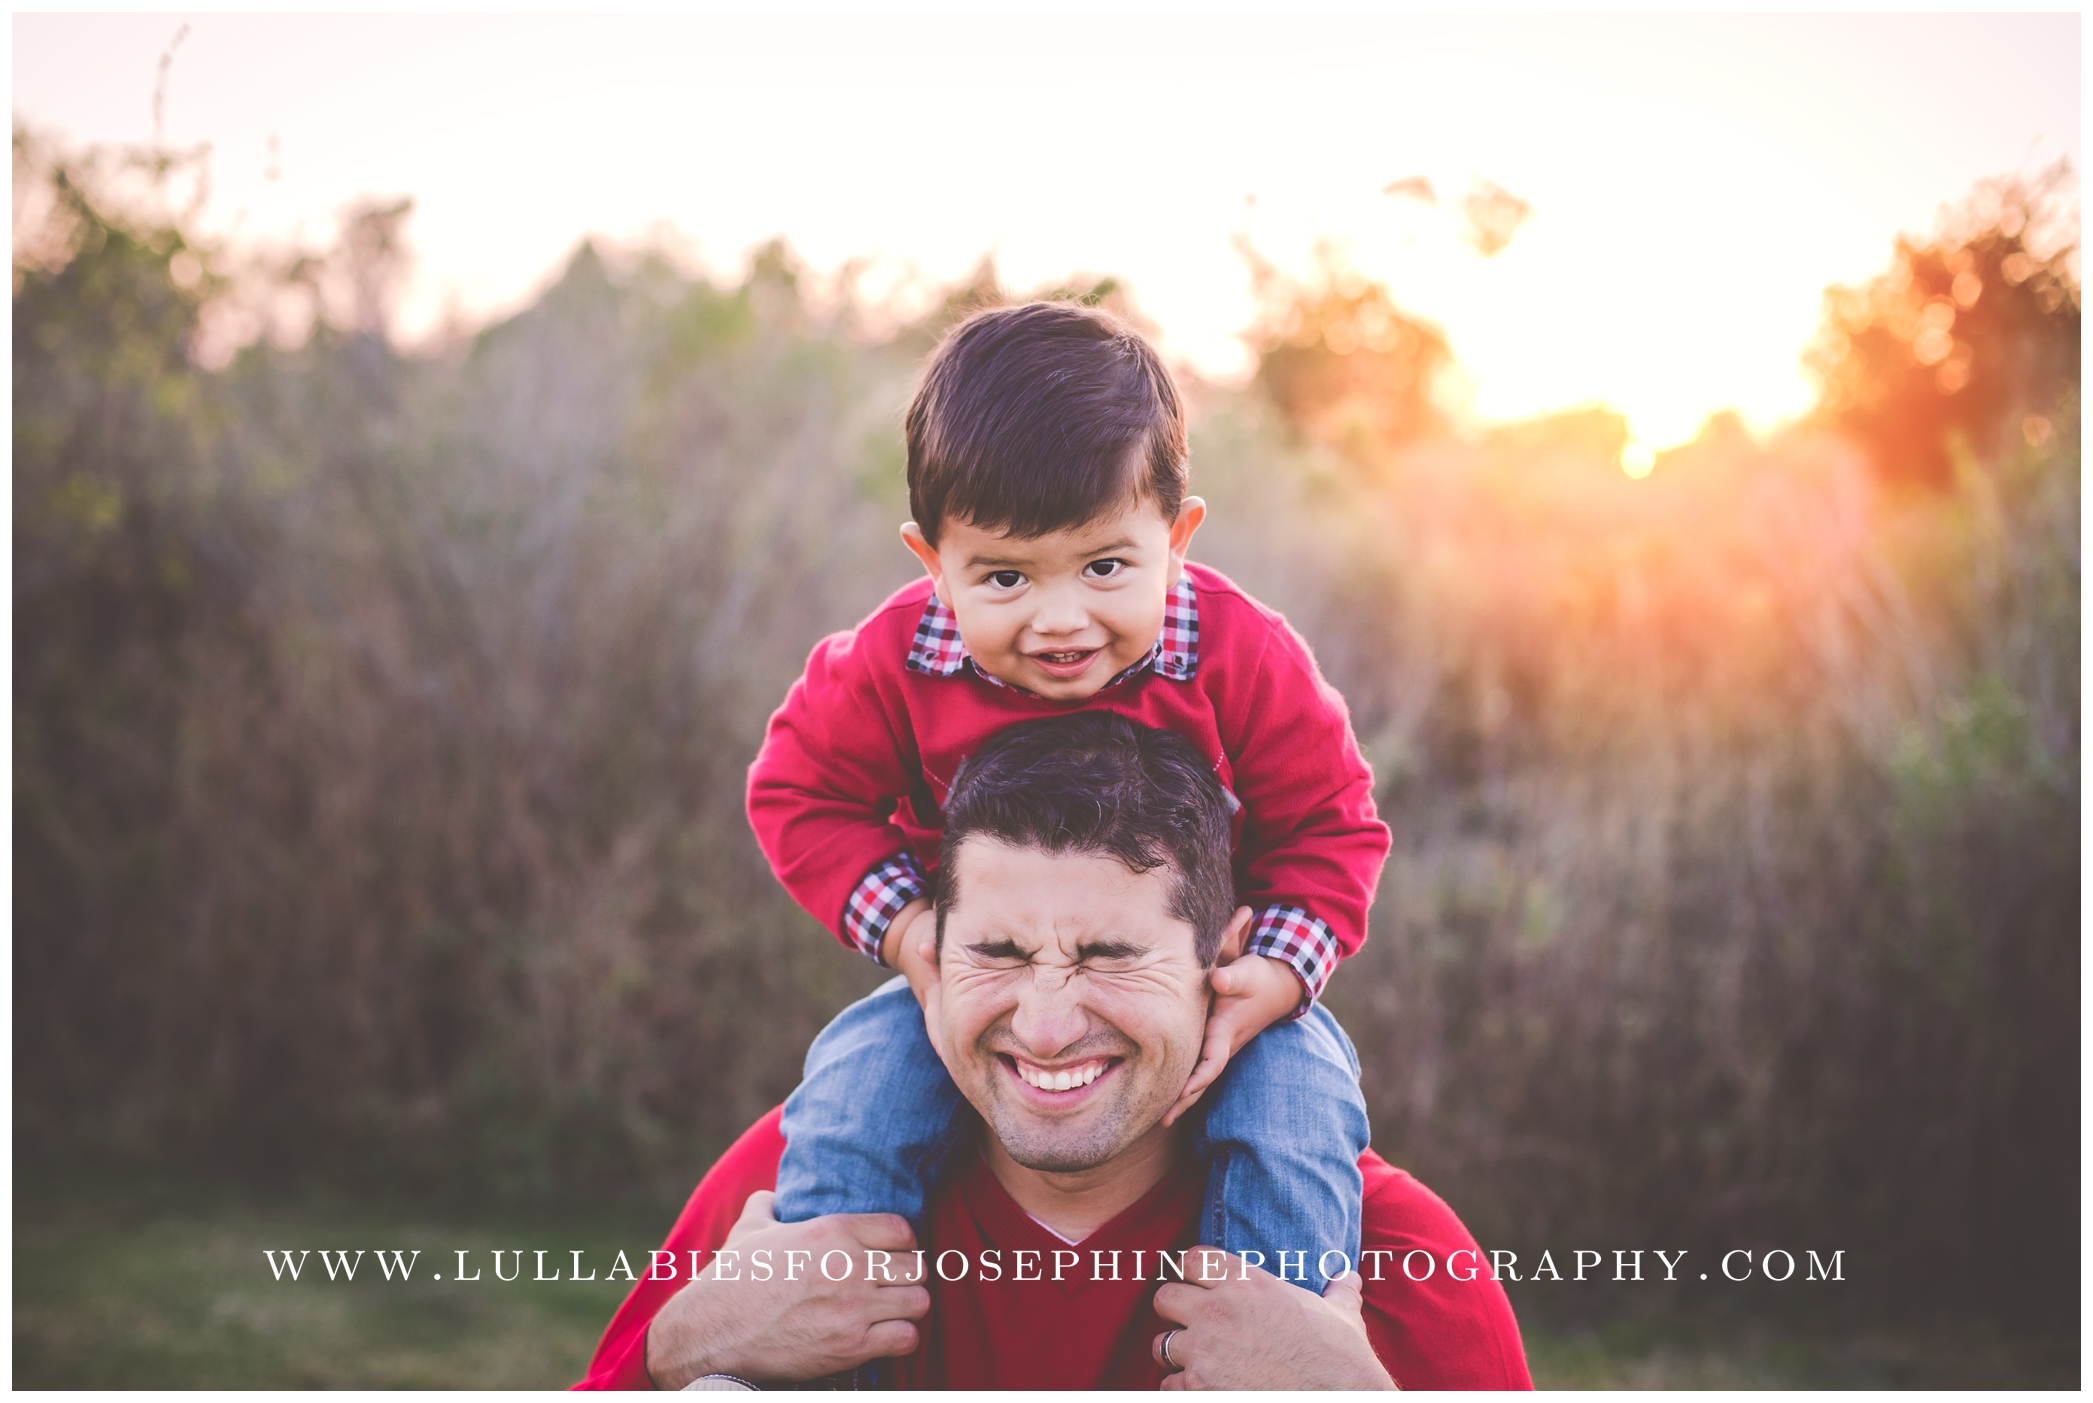 Morris-County-Family-Photographer-Family-Mini-Sessions-Red-Winter-Photos-Outdoor-Sunset